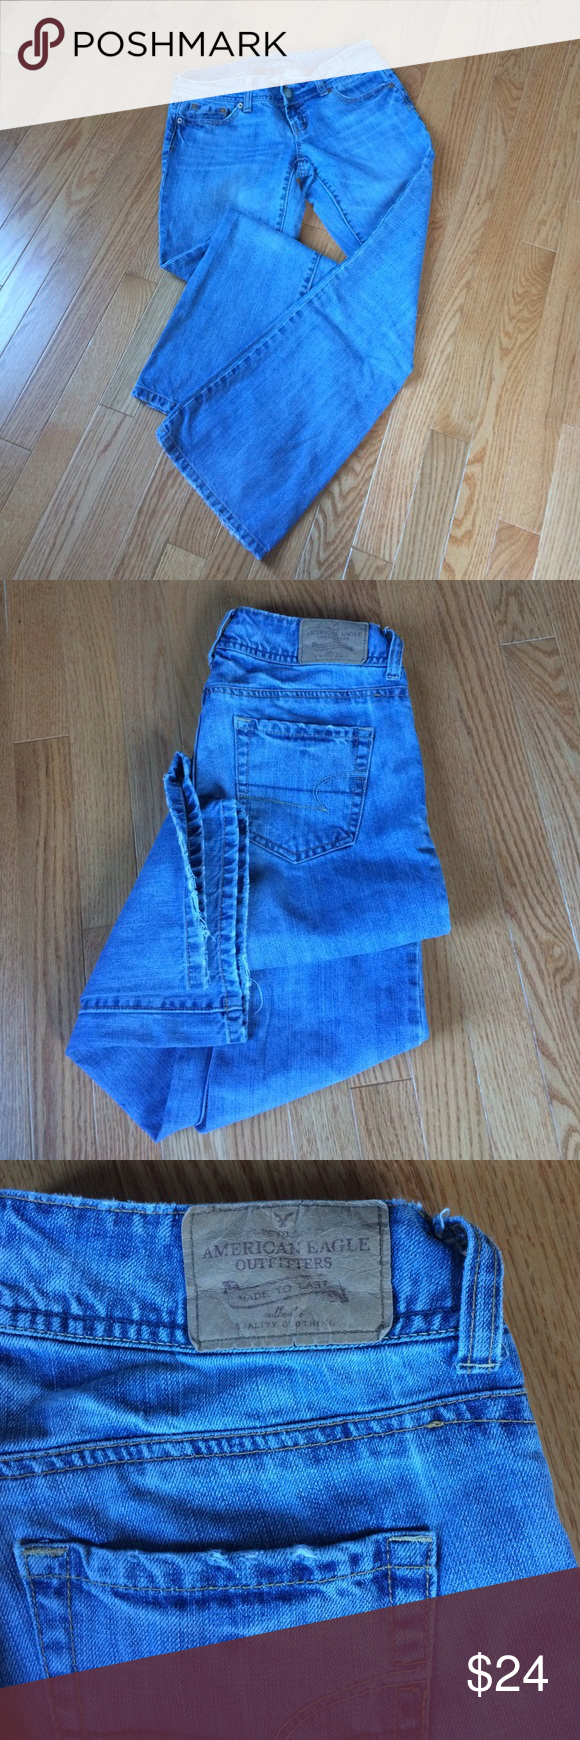 """American Eagle LowRise Artist Boot Cut Jeans Size 4 ShortAmerican Eagle Outfitter Artist jeans. perfectly faded with a little fray at the hem. super soft and very comfortable. approximate measurements: Waist 15.5"""" across, inseam: 30, thigh 10"""" across, Rise 6.5"""". 100% cotton. American Eagle Outfitters Jeans Boot Cut"""